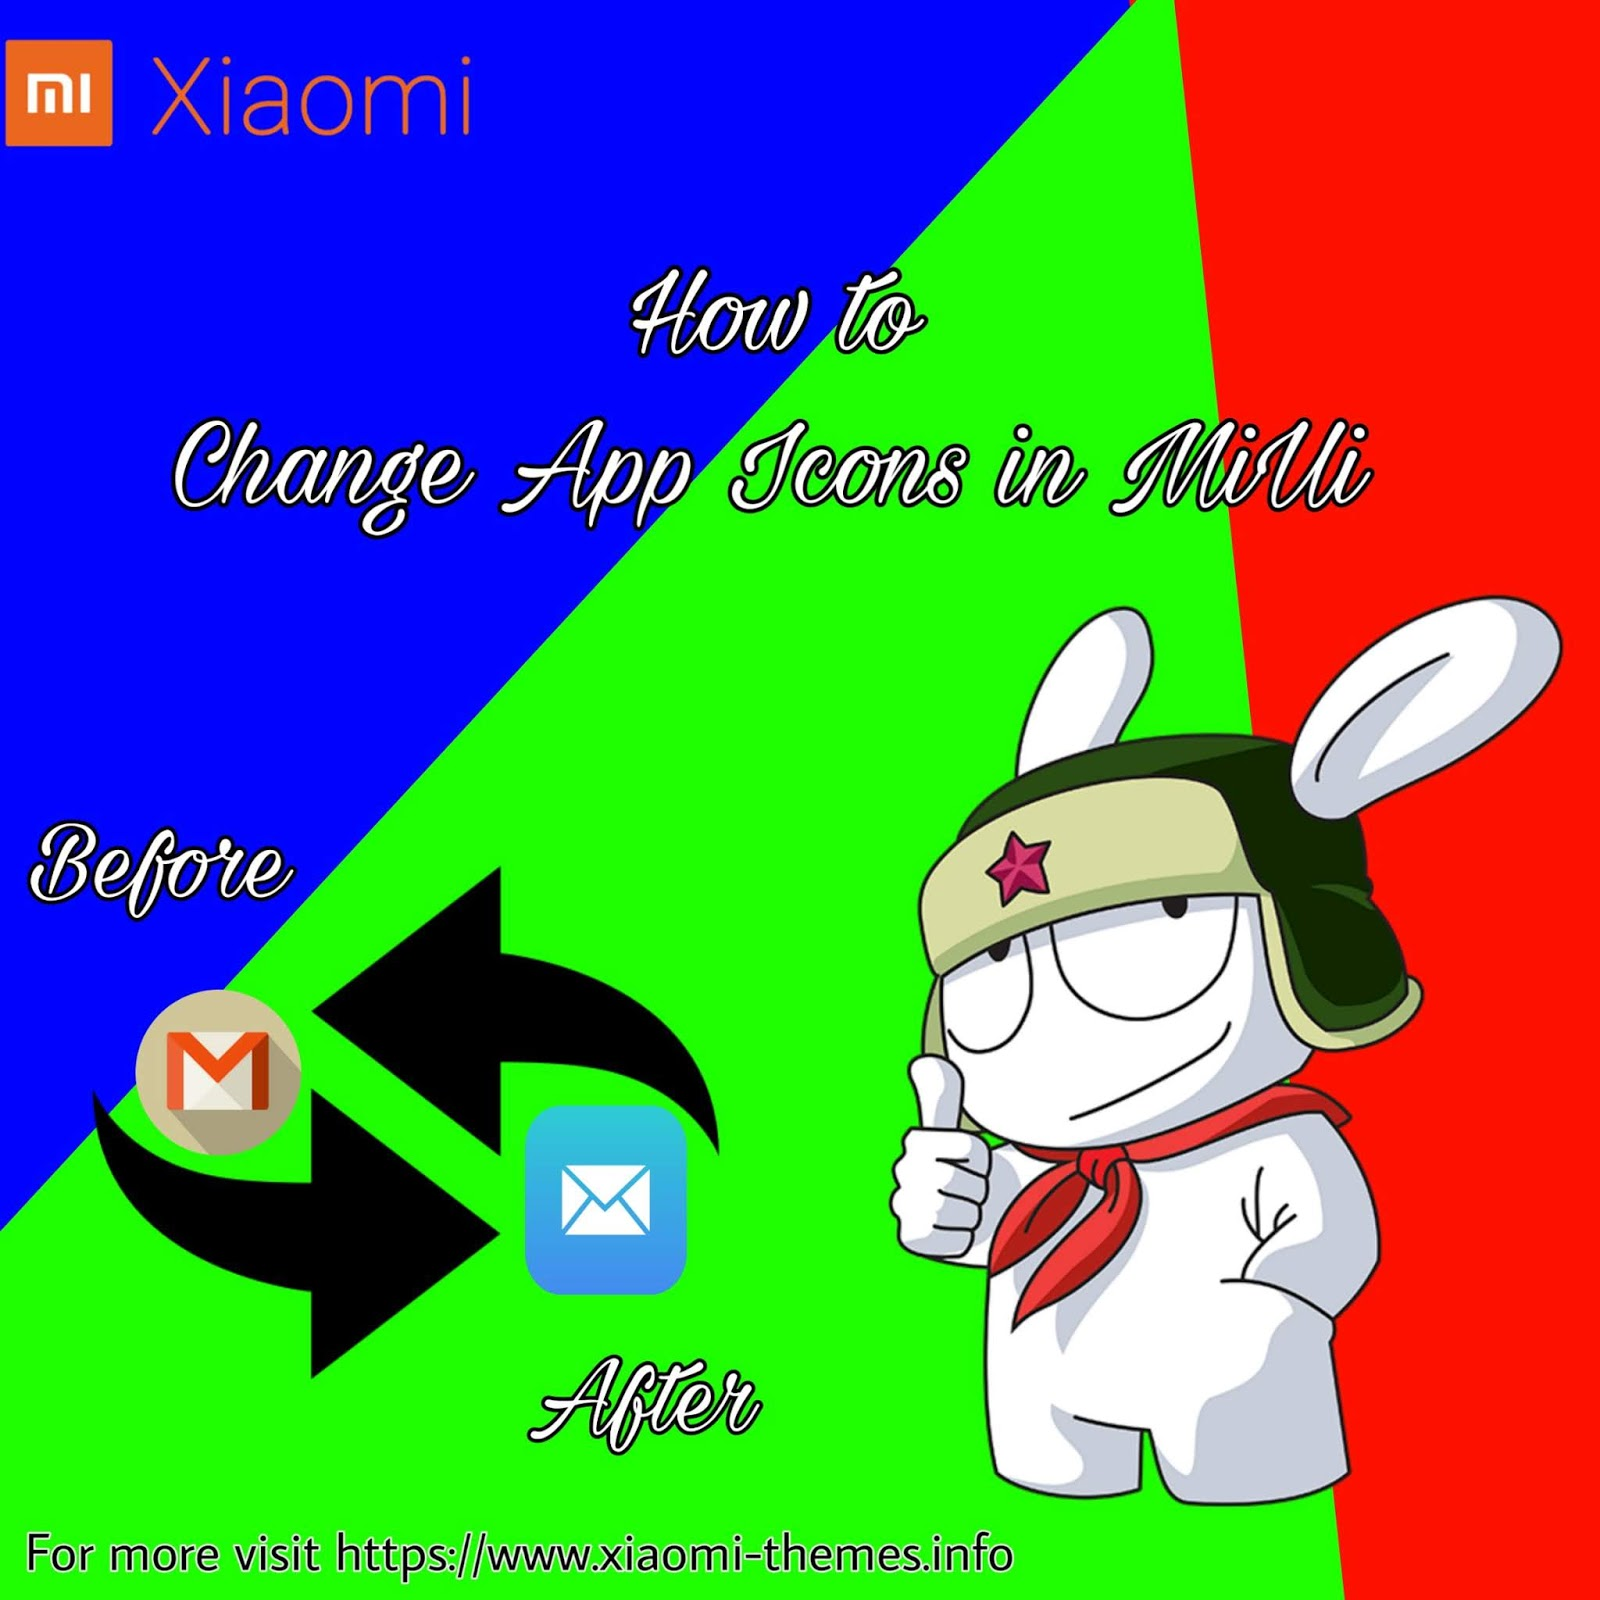 How to change App Icons in MiUi ||Xiaomi icons|| Redmi icons